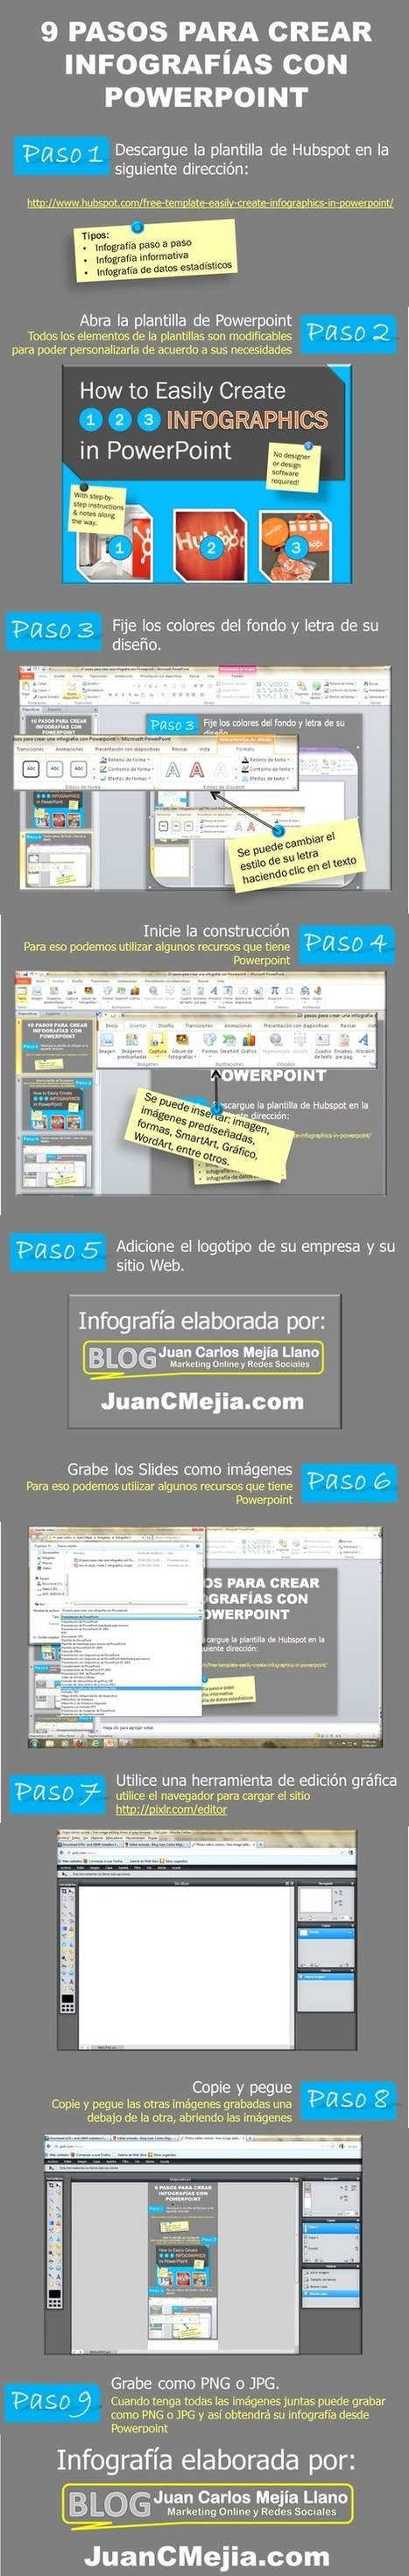 9 pasos para crear infografías con Power Point... o con Impress | Educación 2.0 | Scoop.it